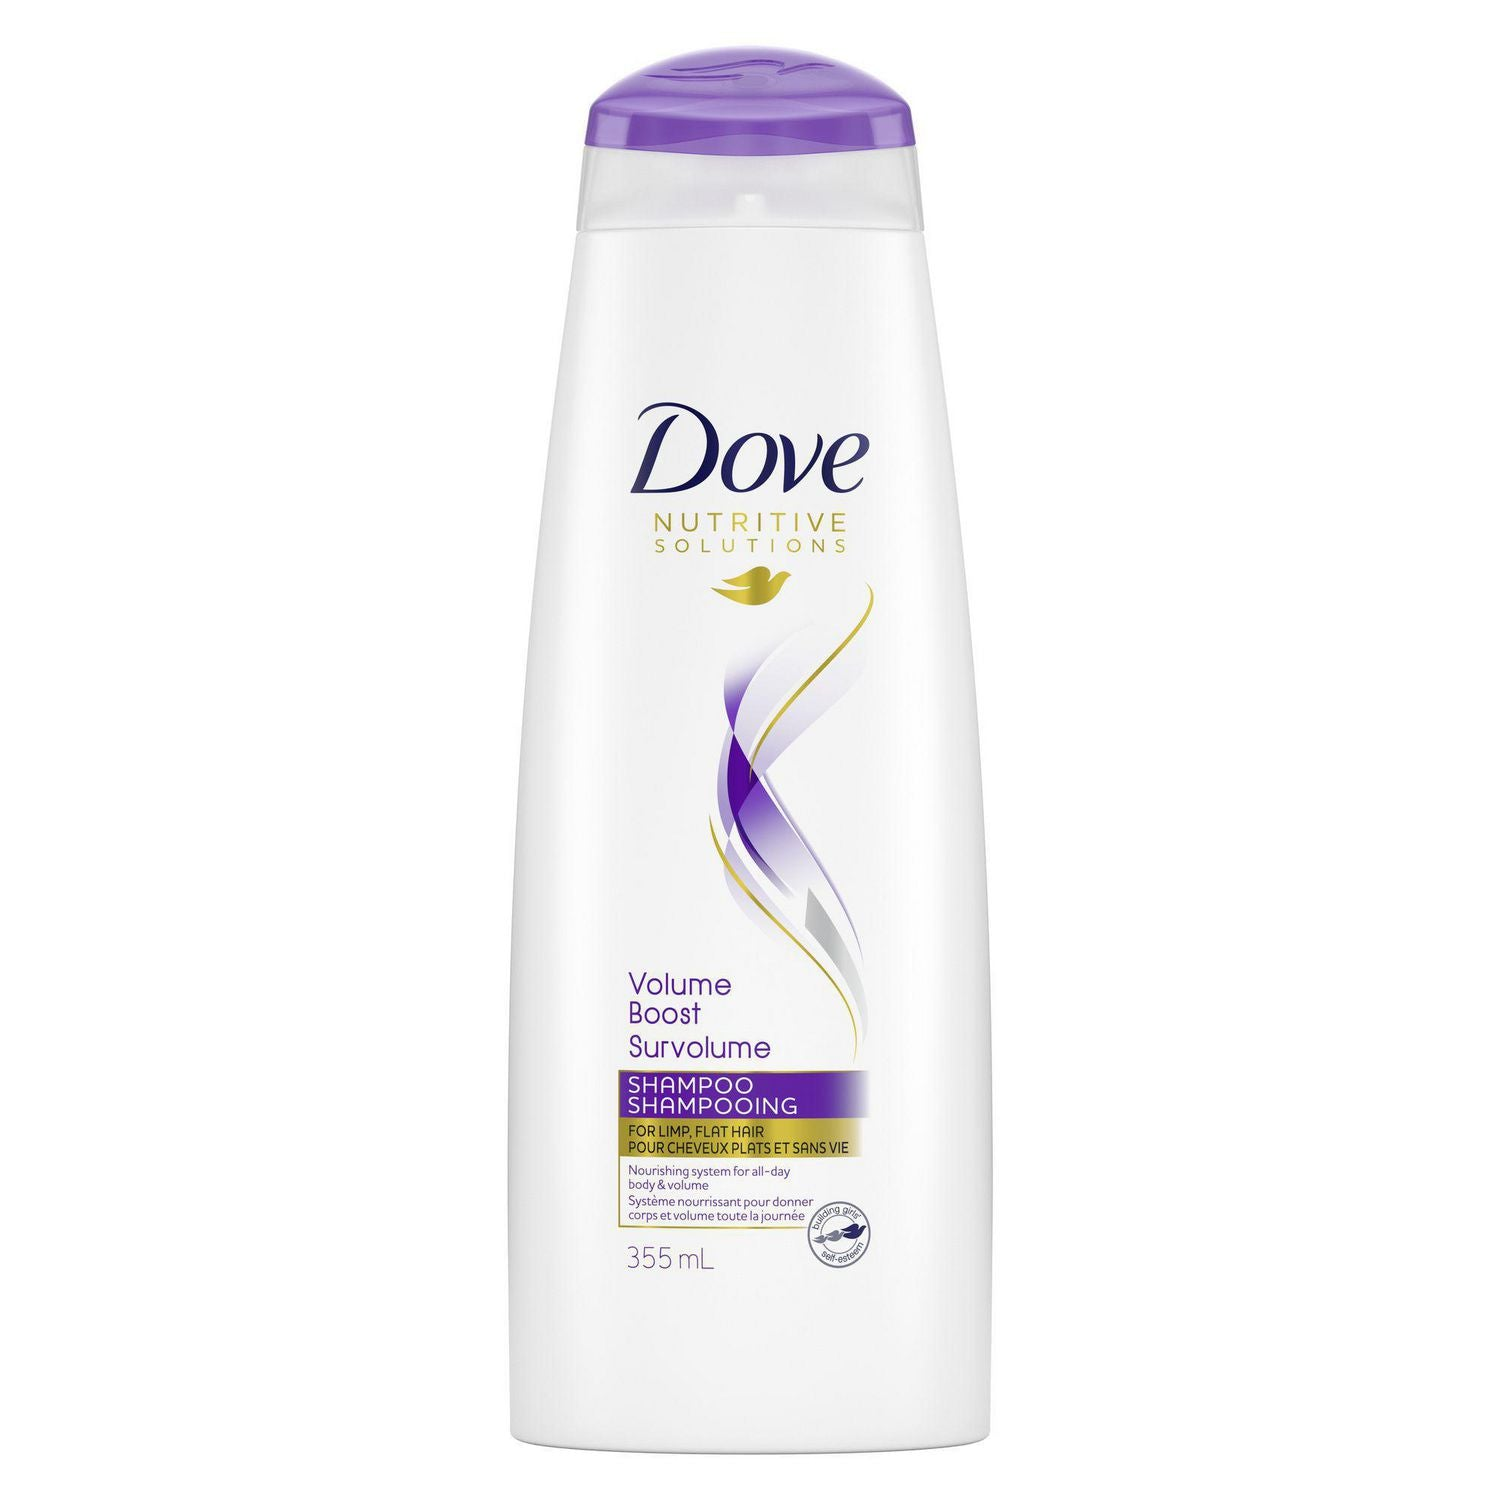 Dove Nutritive Solutions Volume Boost Shampoo 355mL